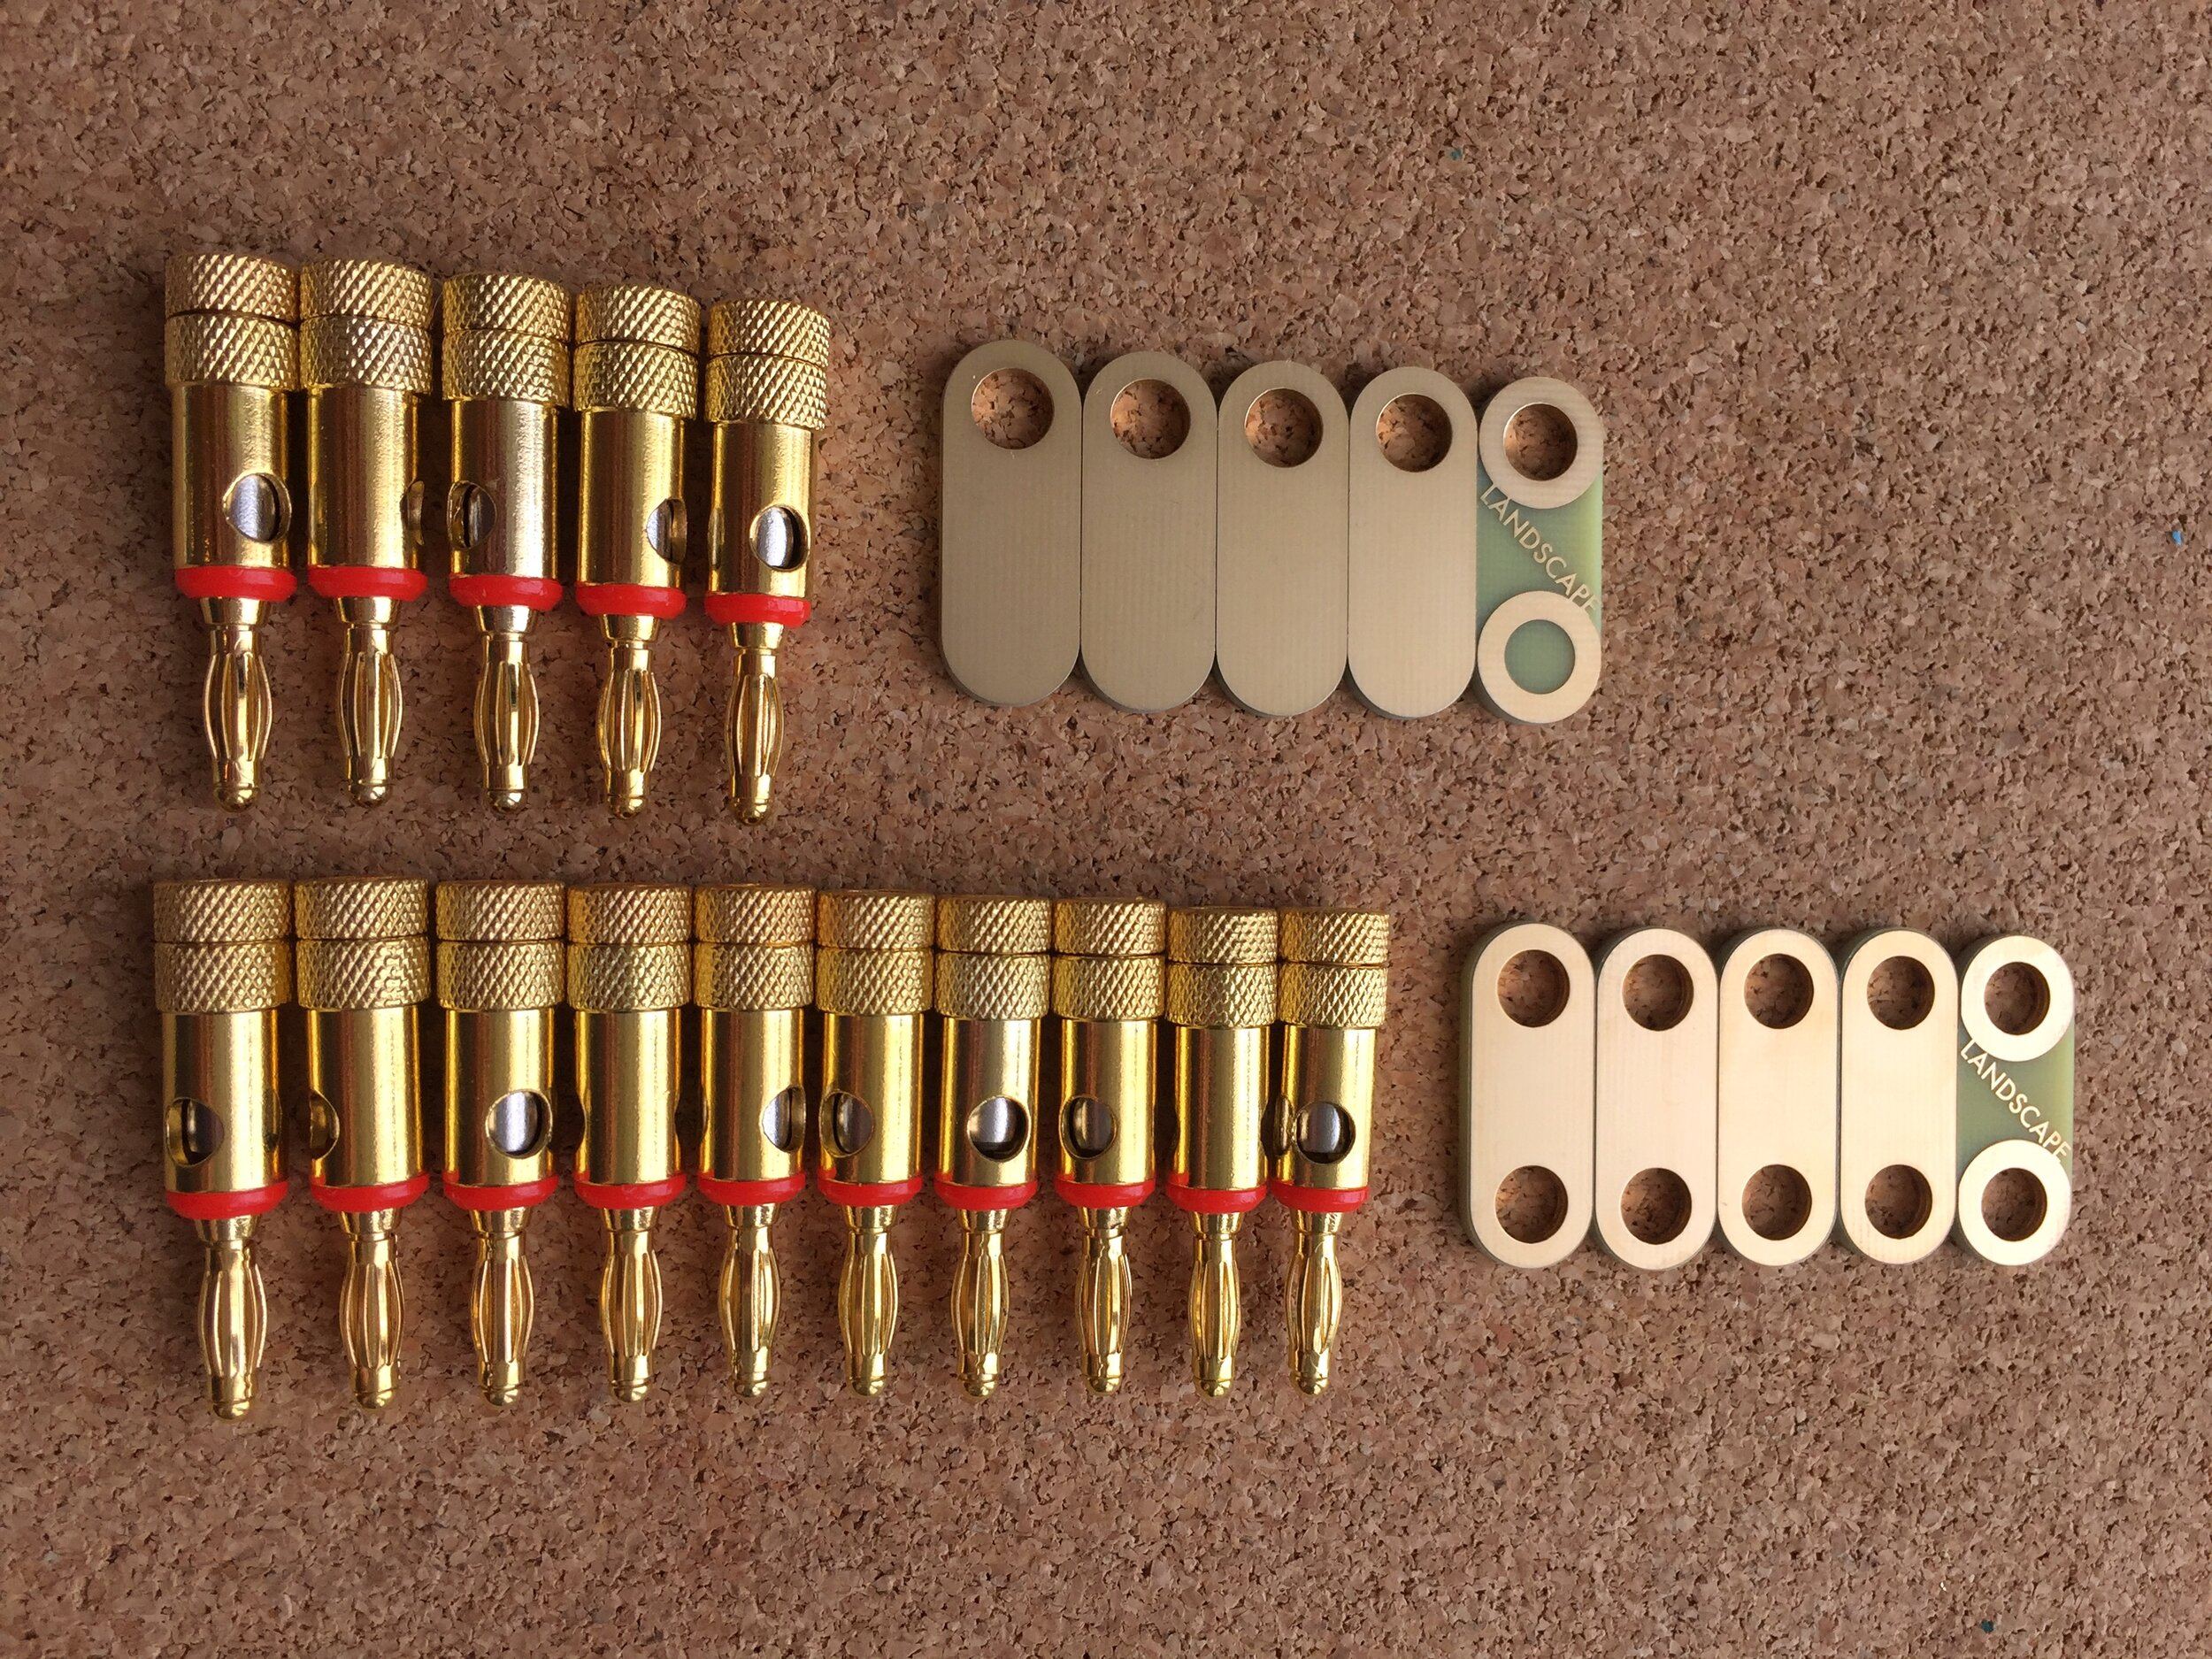 *5 touch points + 5 shorting bars kit